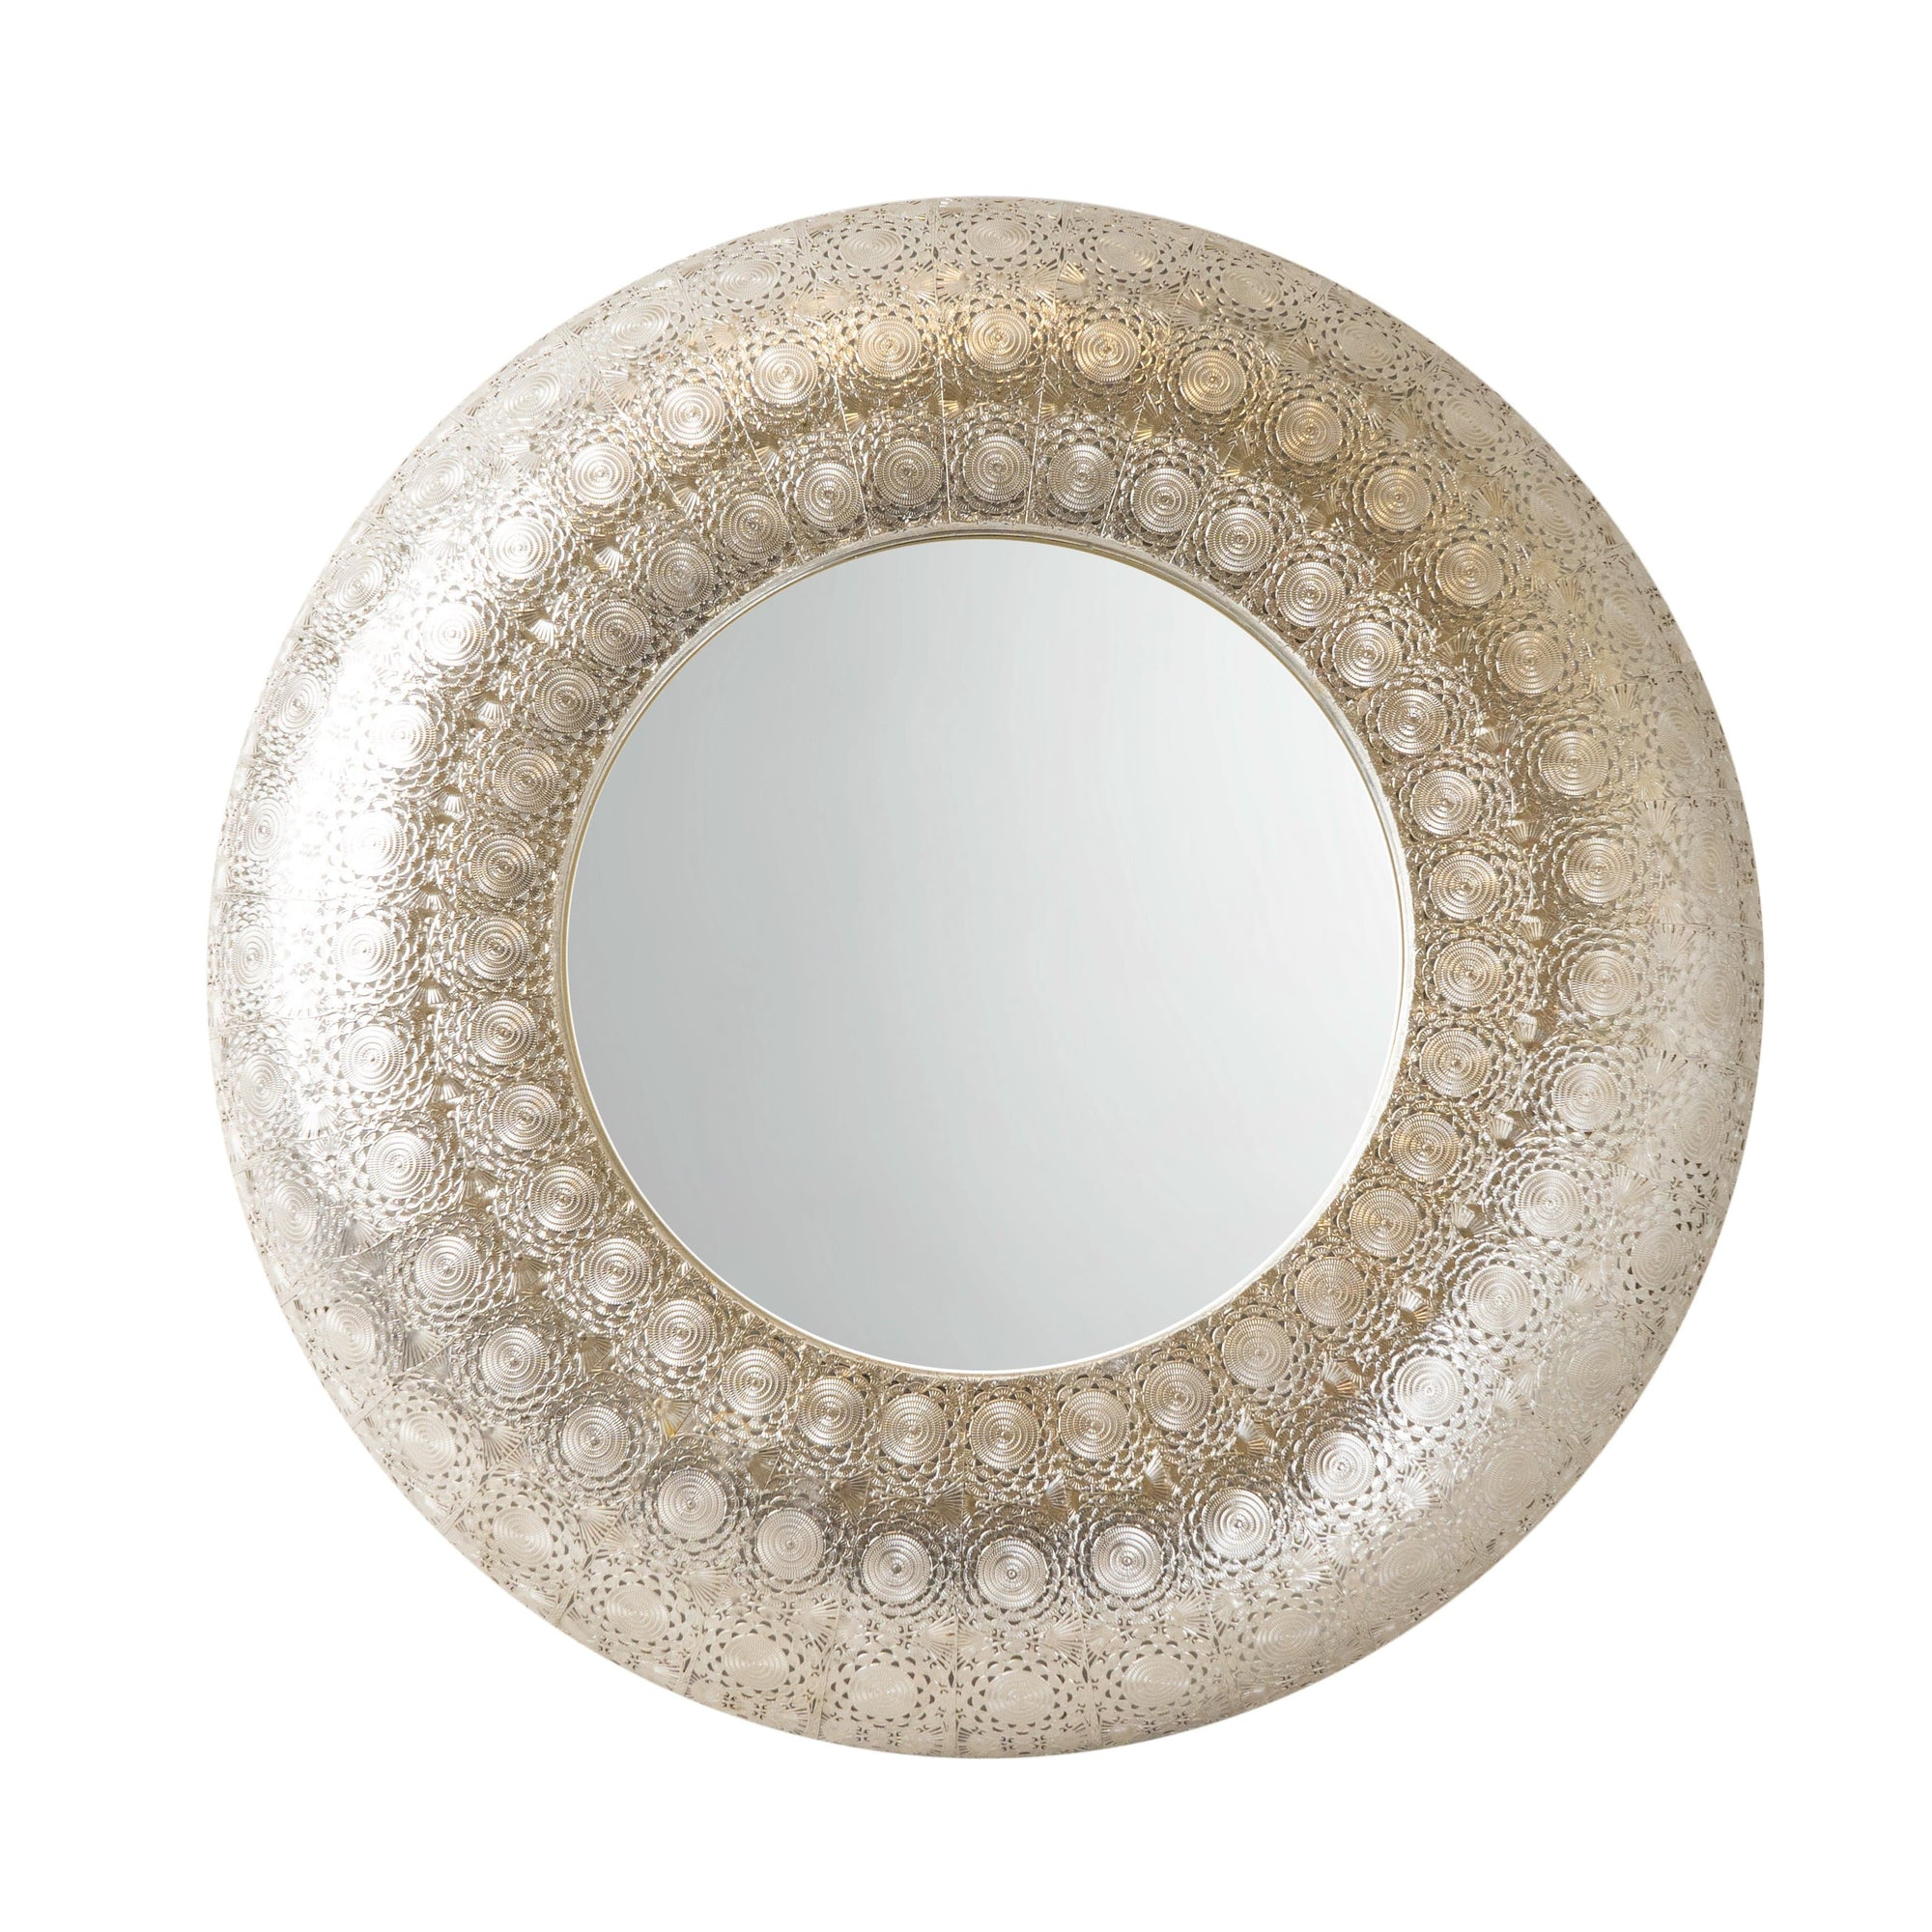 Candlelight Home Moroccan Cut Out Filigree Silver Round Mirror 72cm 1PK